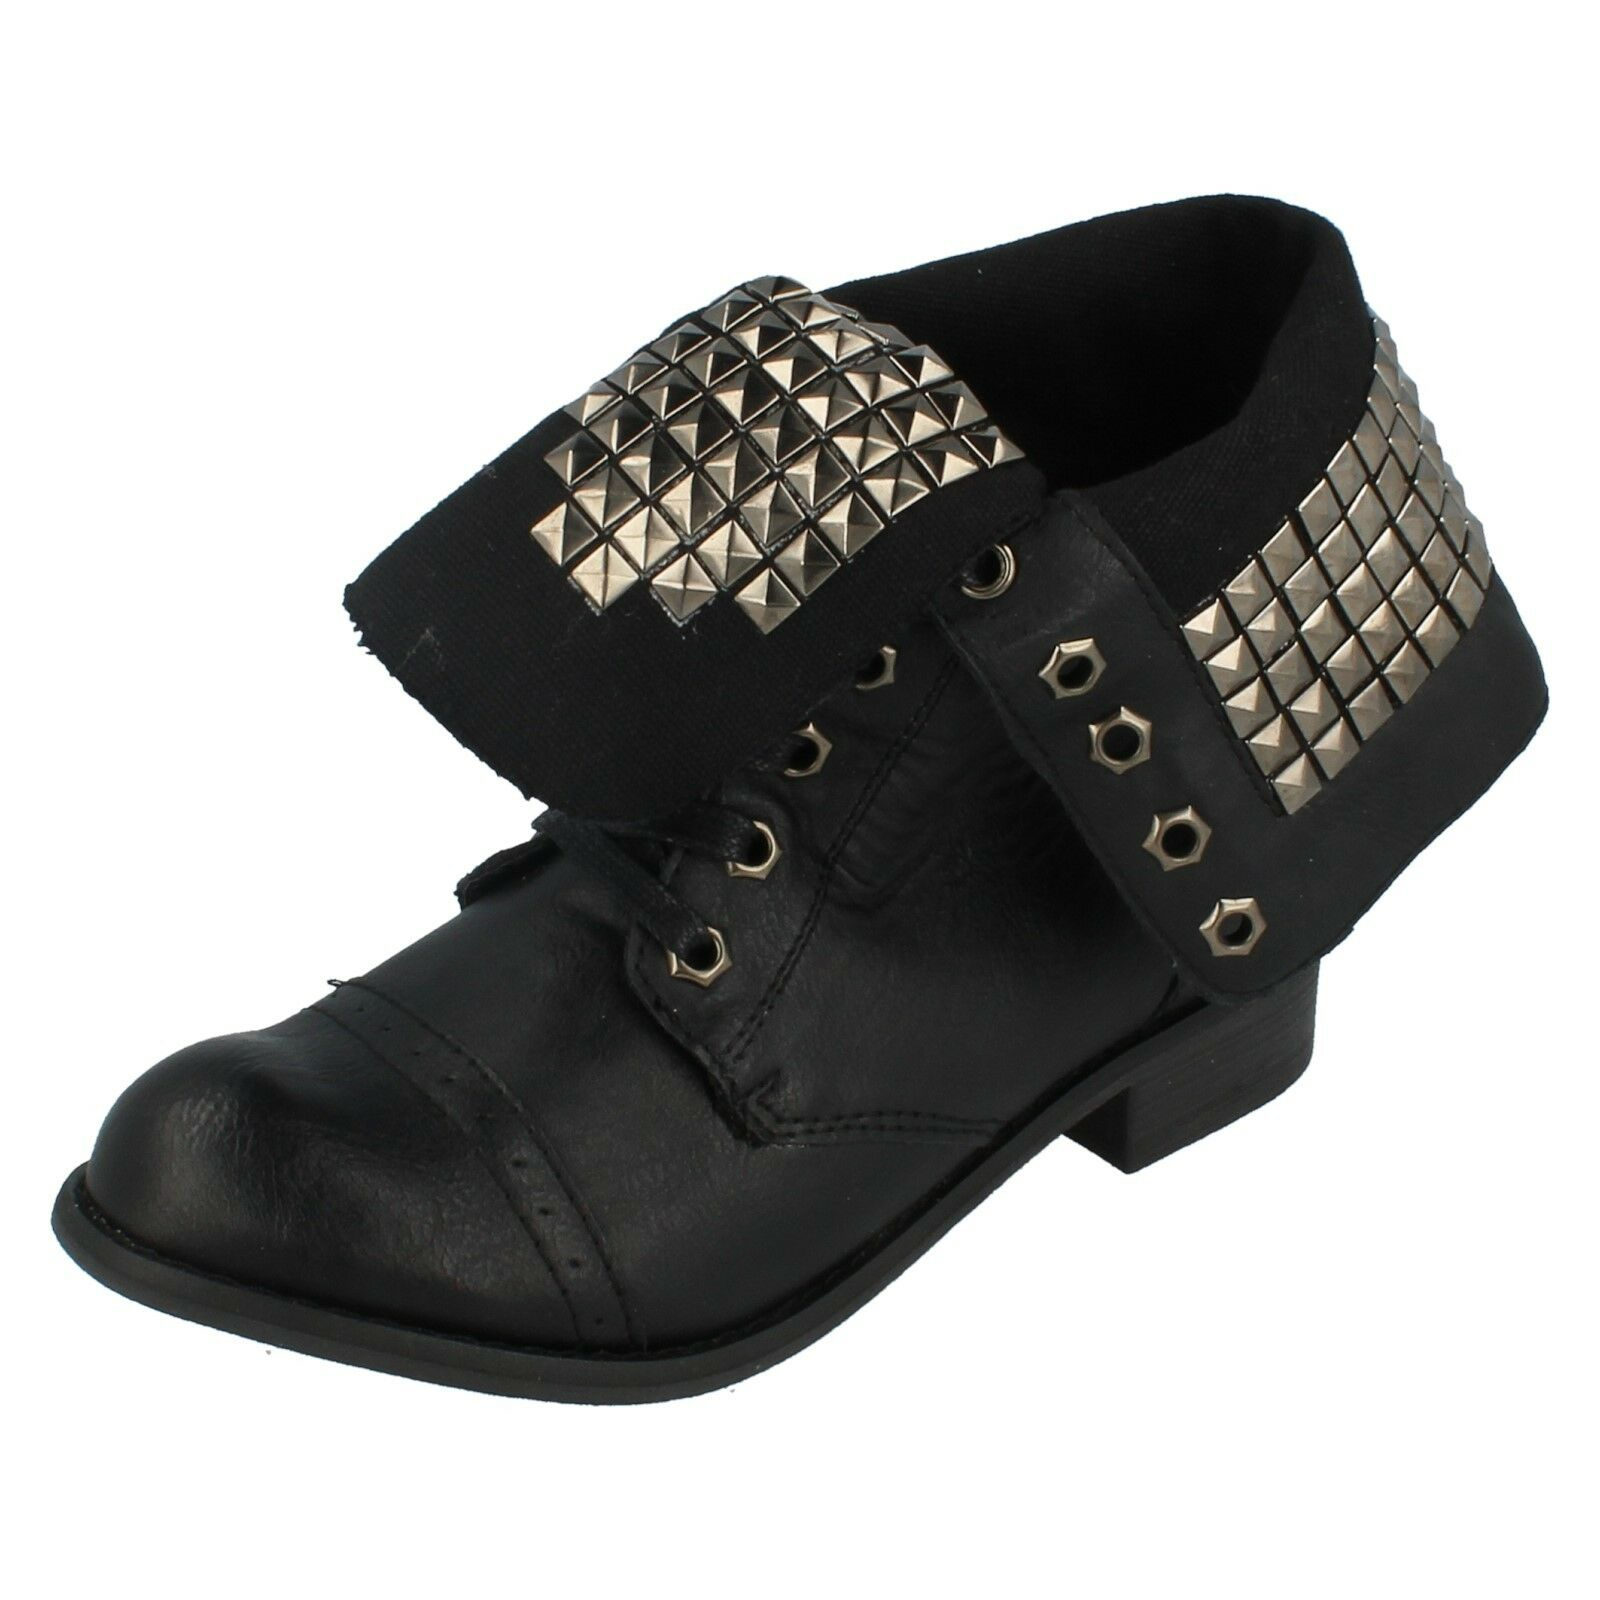 Ladies F5528 Black Studded Lace Up Ankle boot By Spot On £19.99